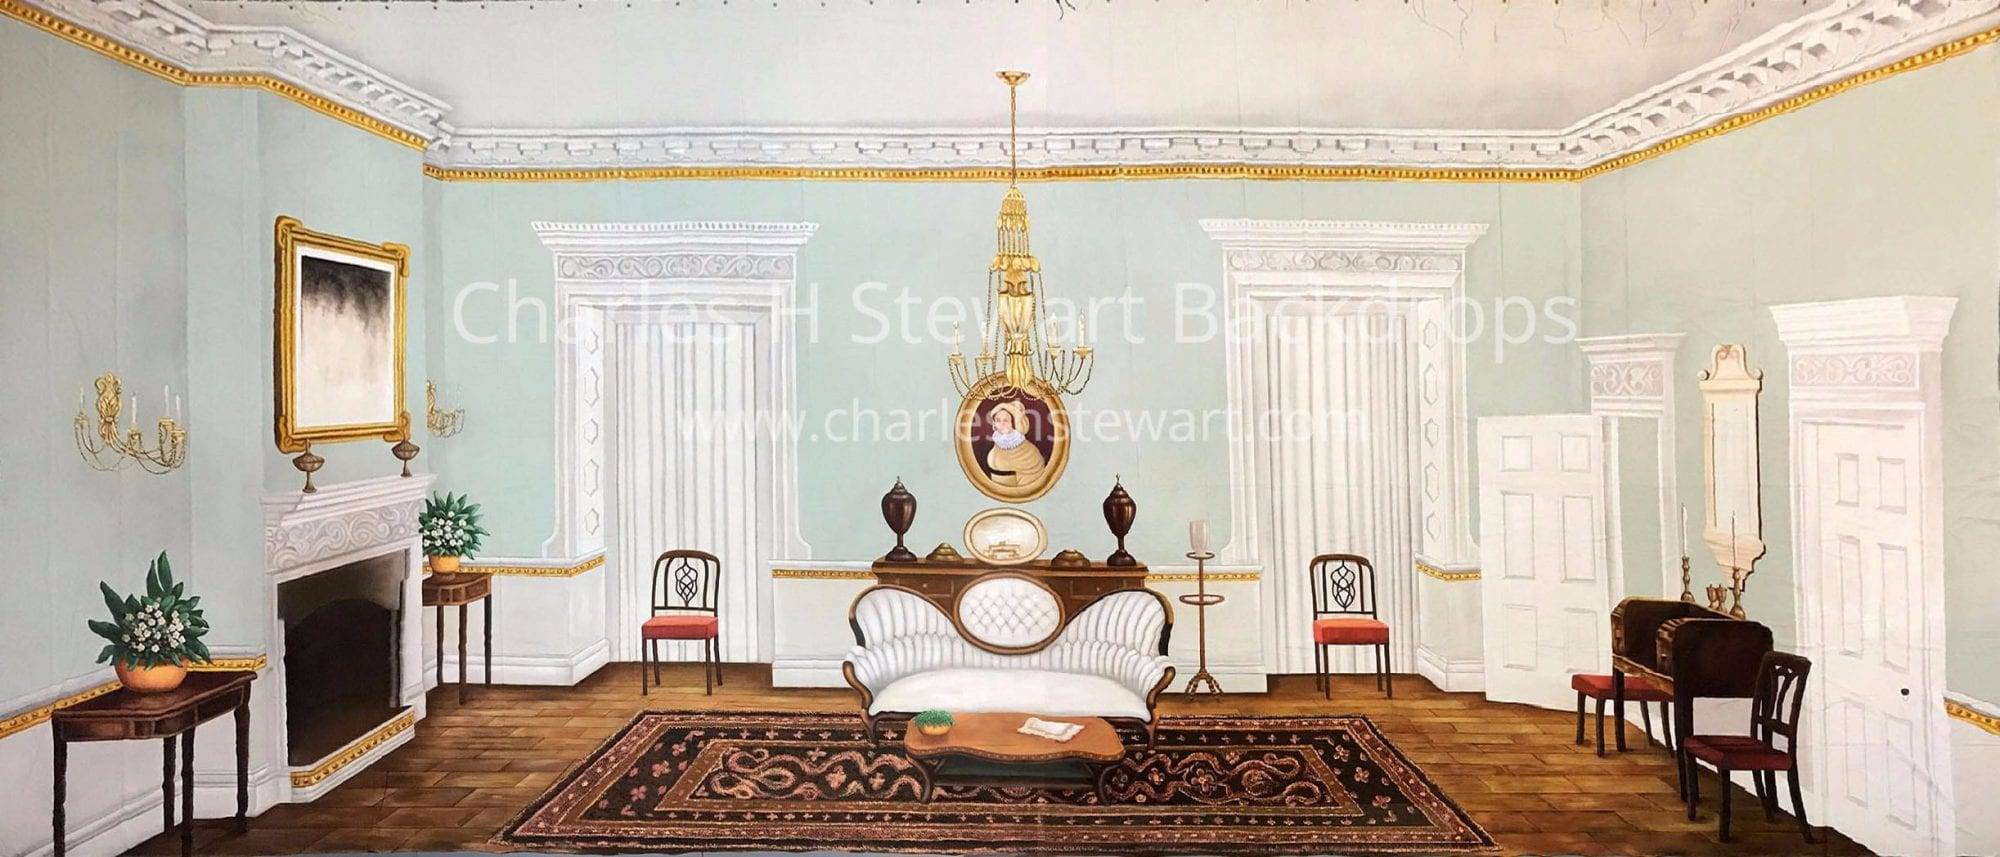 Victorian Interior Backdrop - Backdrops by Charles H. Stewart